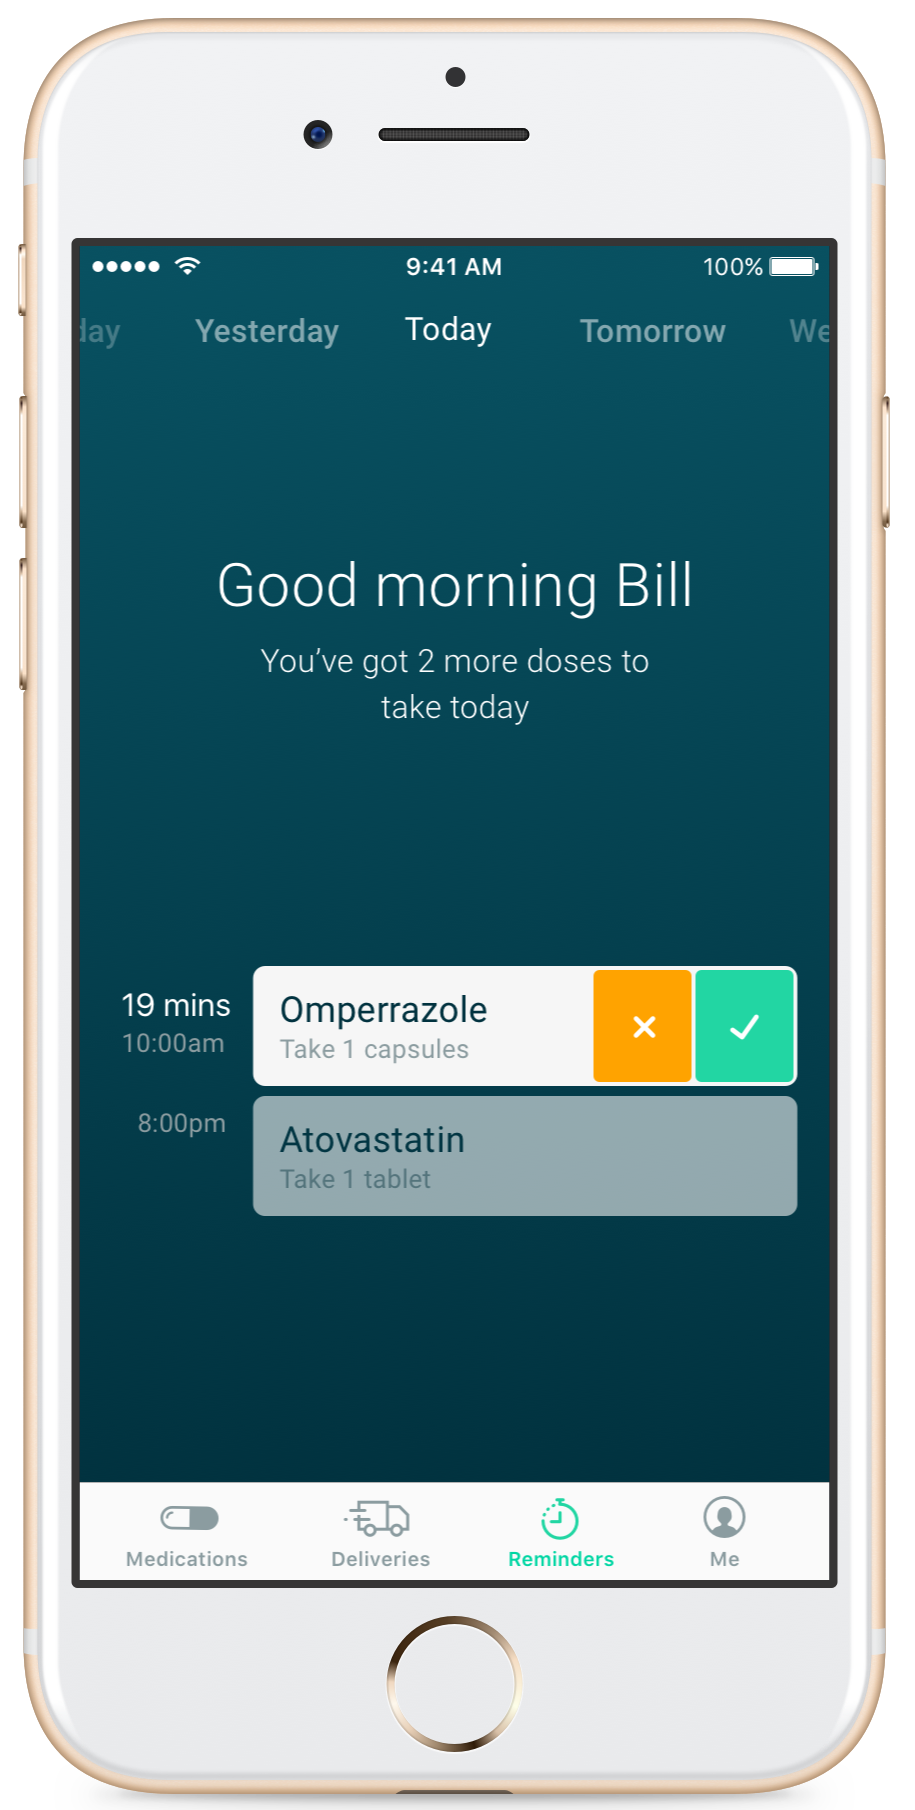 Medication management app Echo raises £7M Series A led by White Star Capital